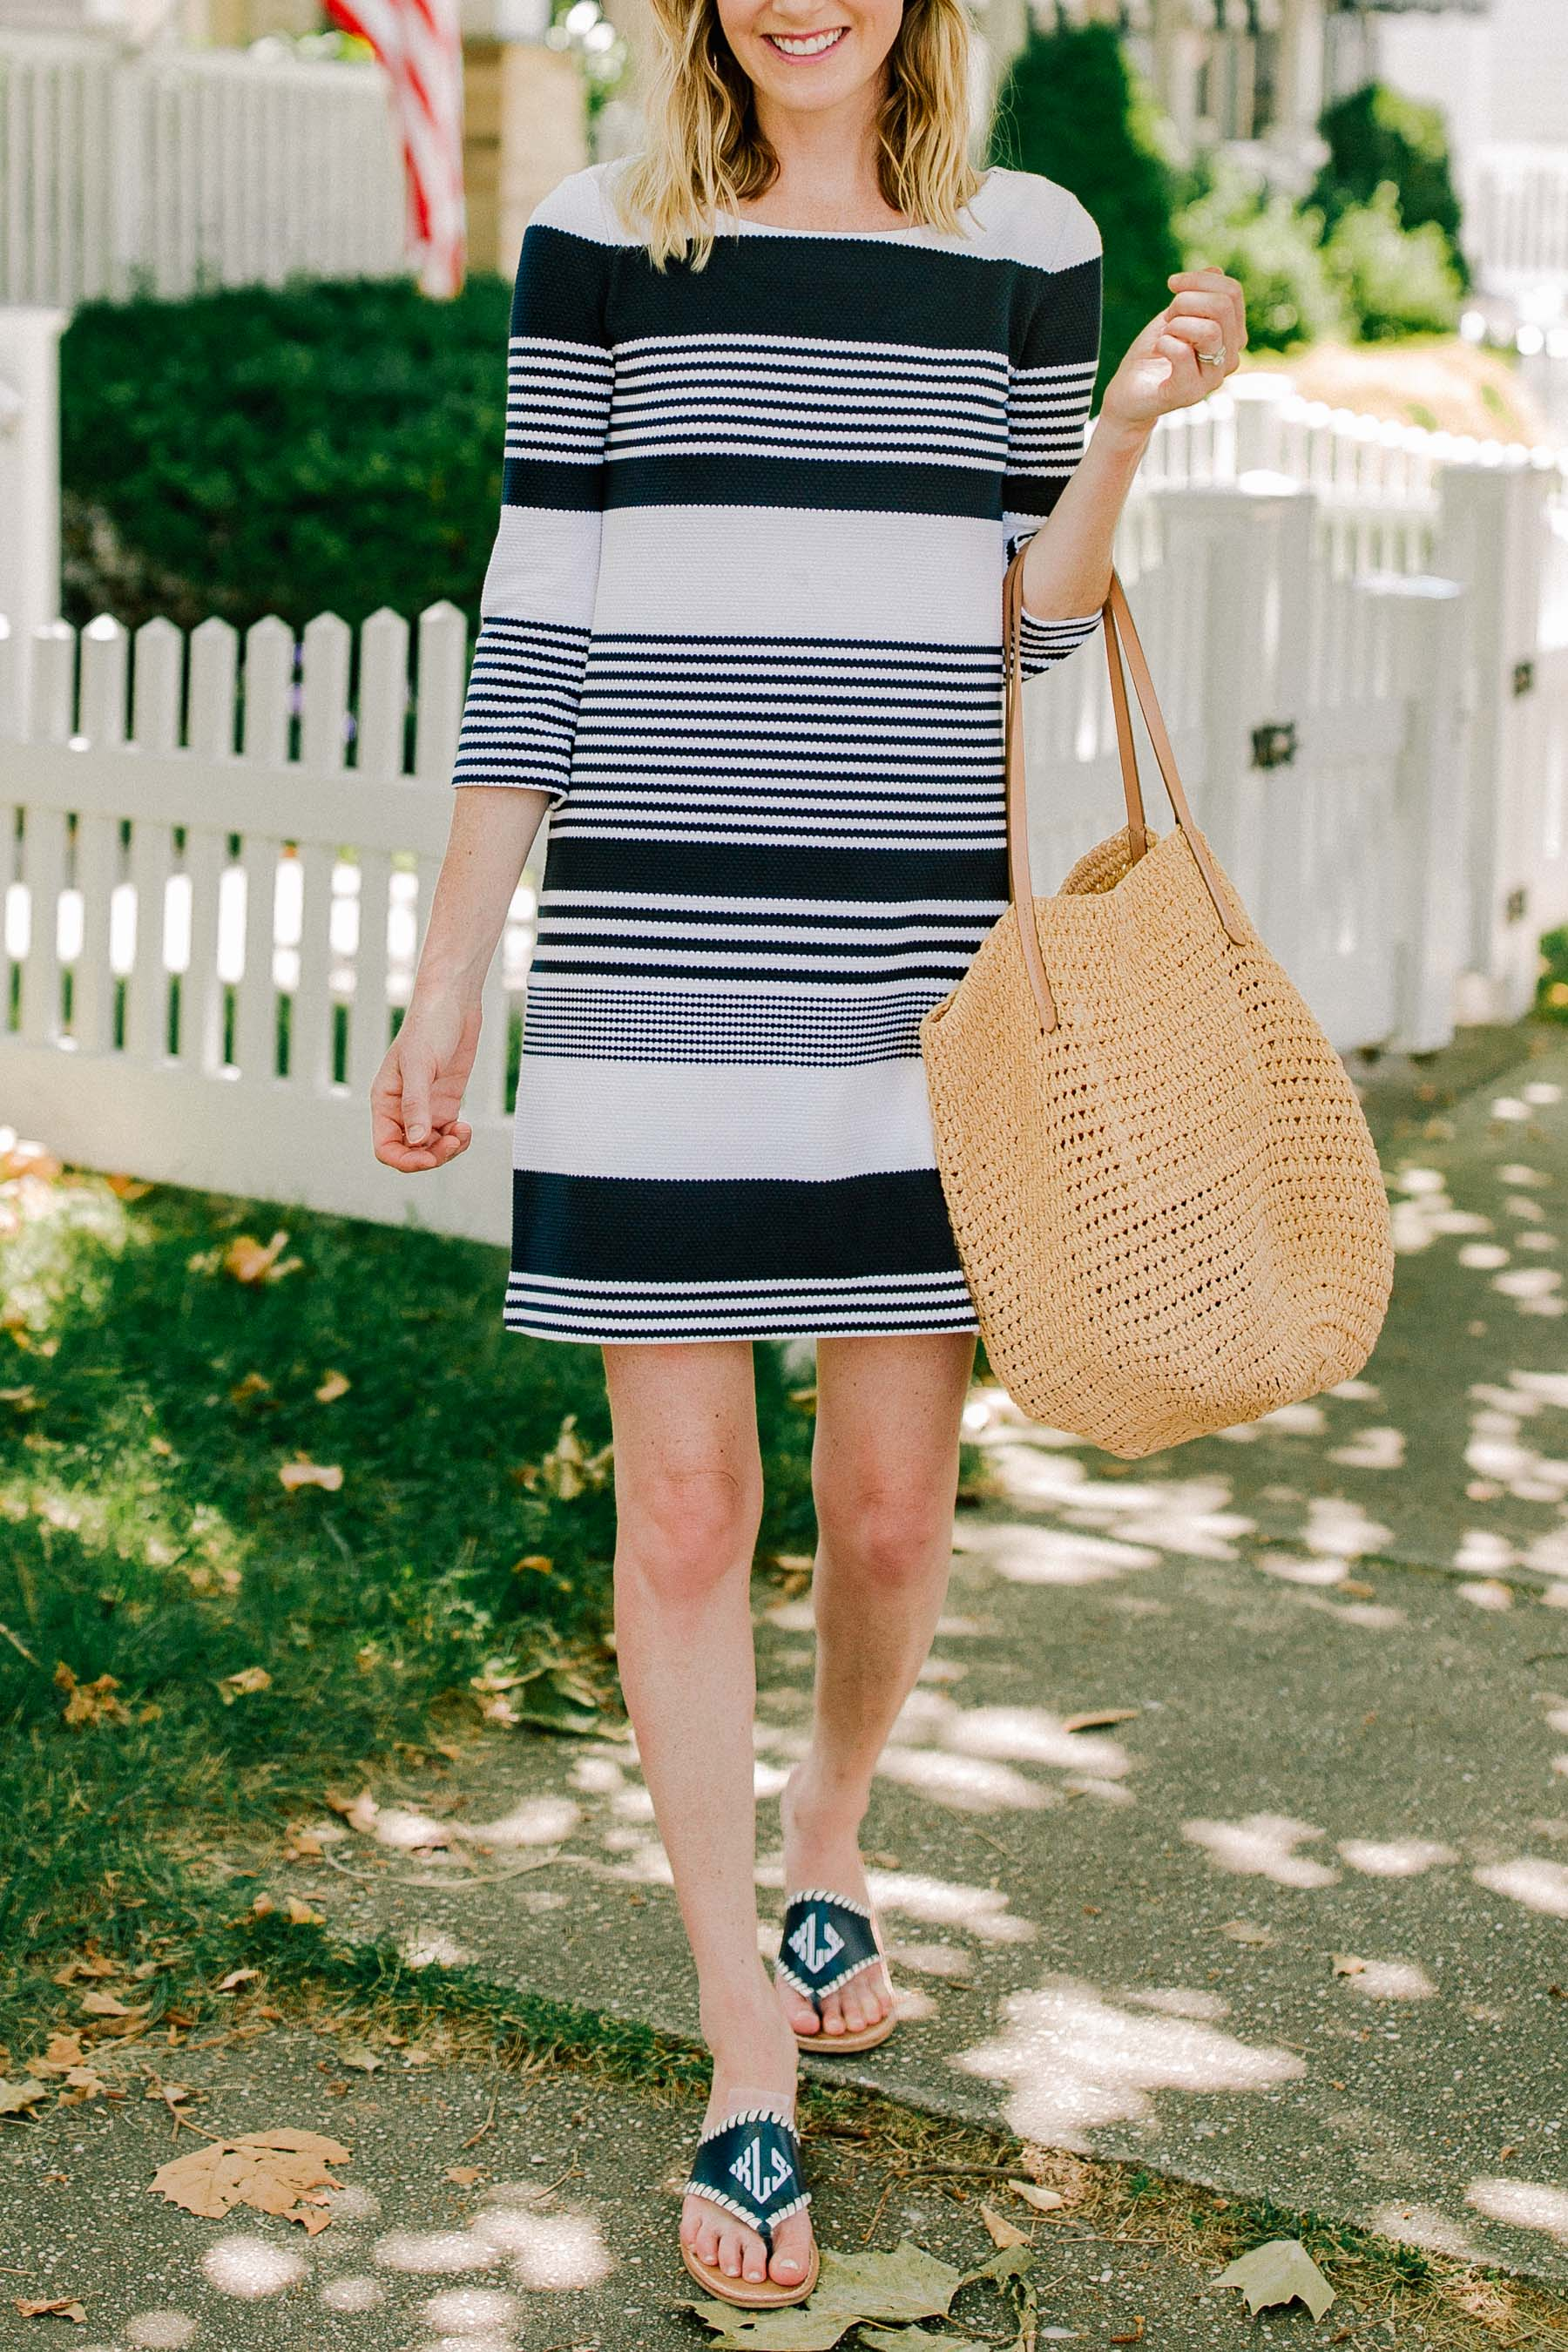 Bay Dress included in the sale!